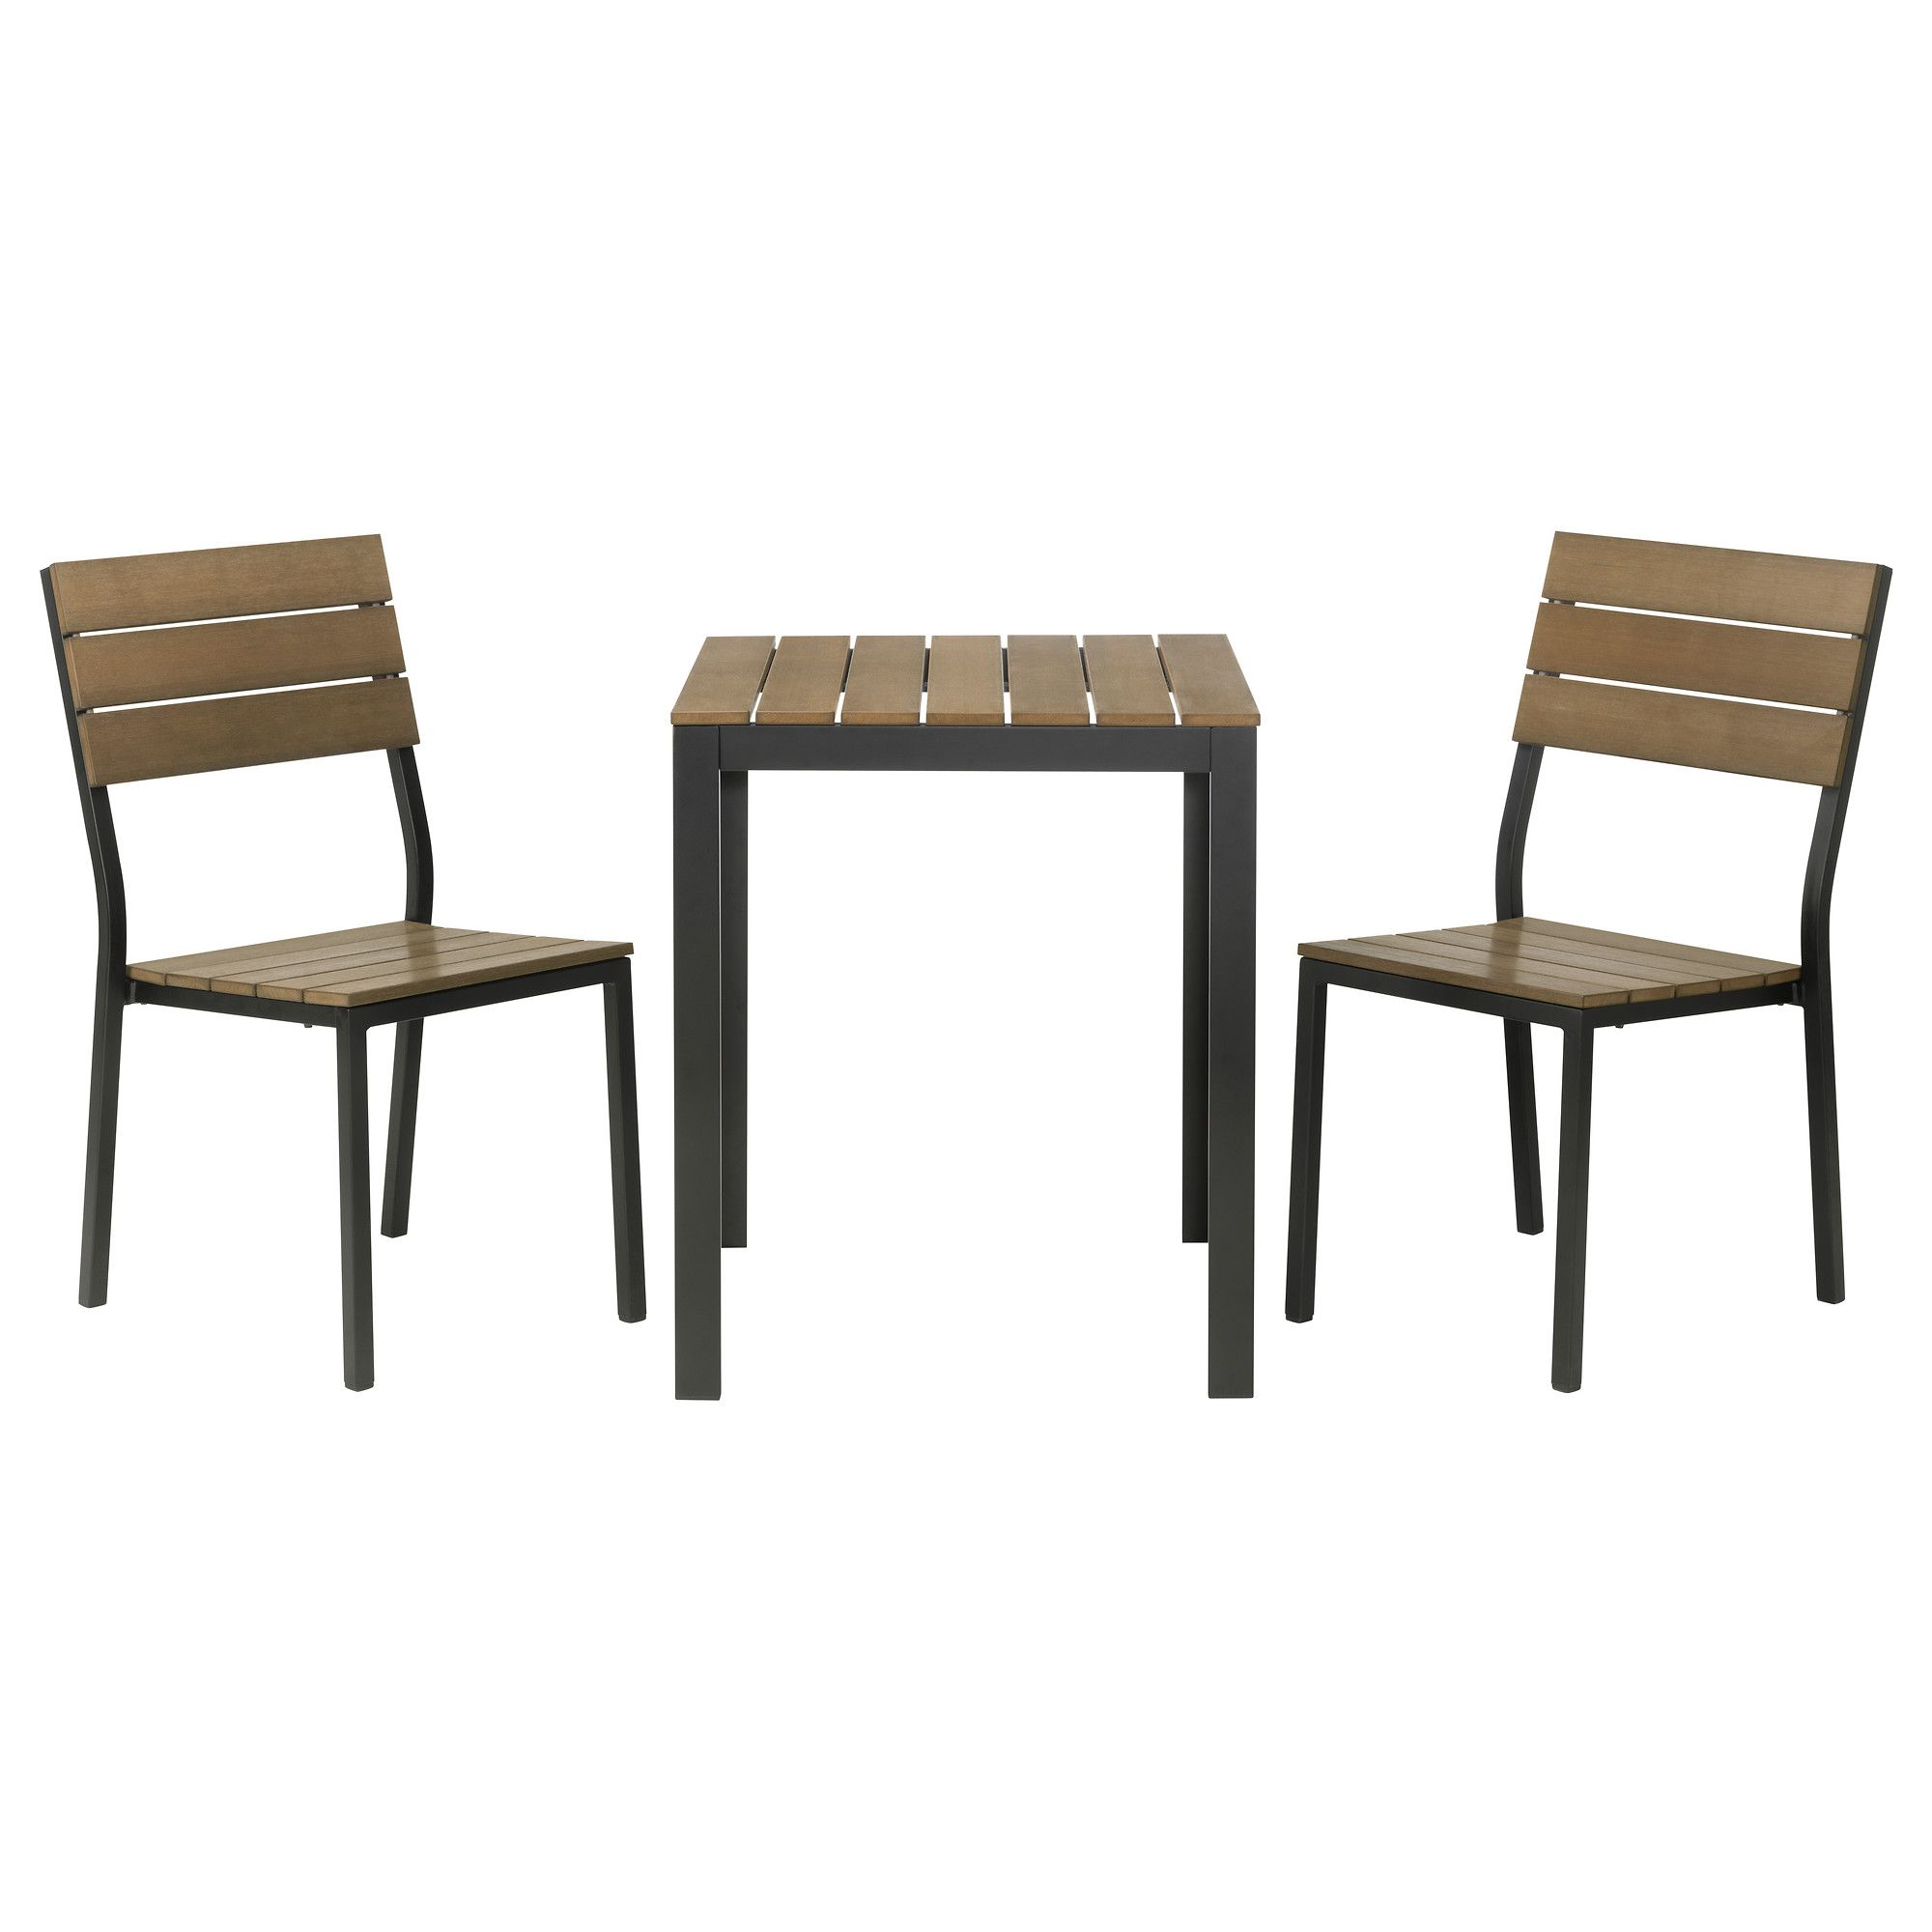 FALSTER Bistro set black brown $189 00 The price reflects